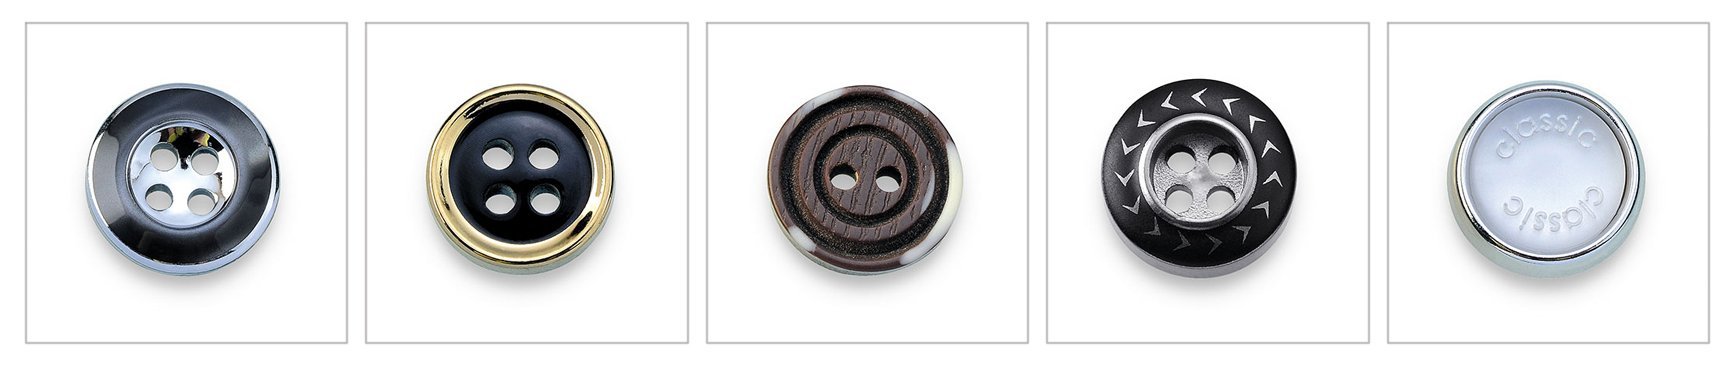 Shirt Buttons Wholesale from China